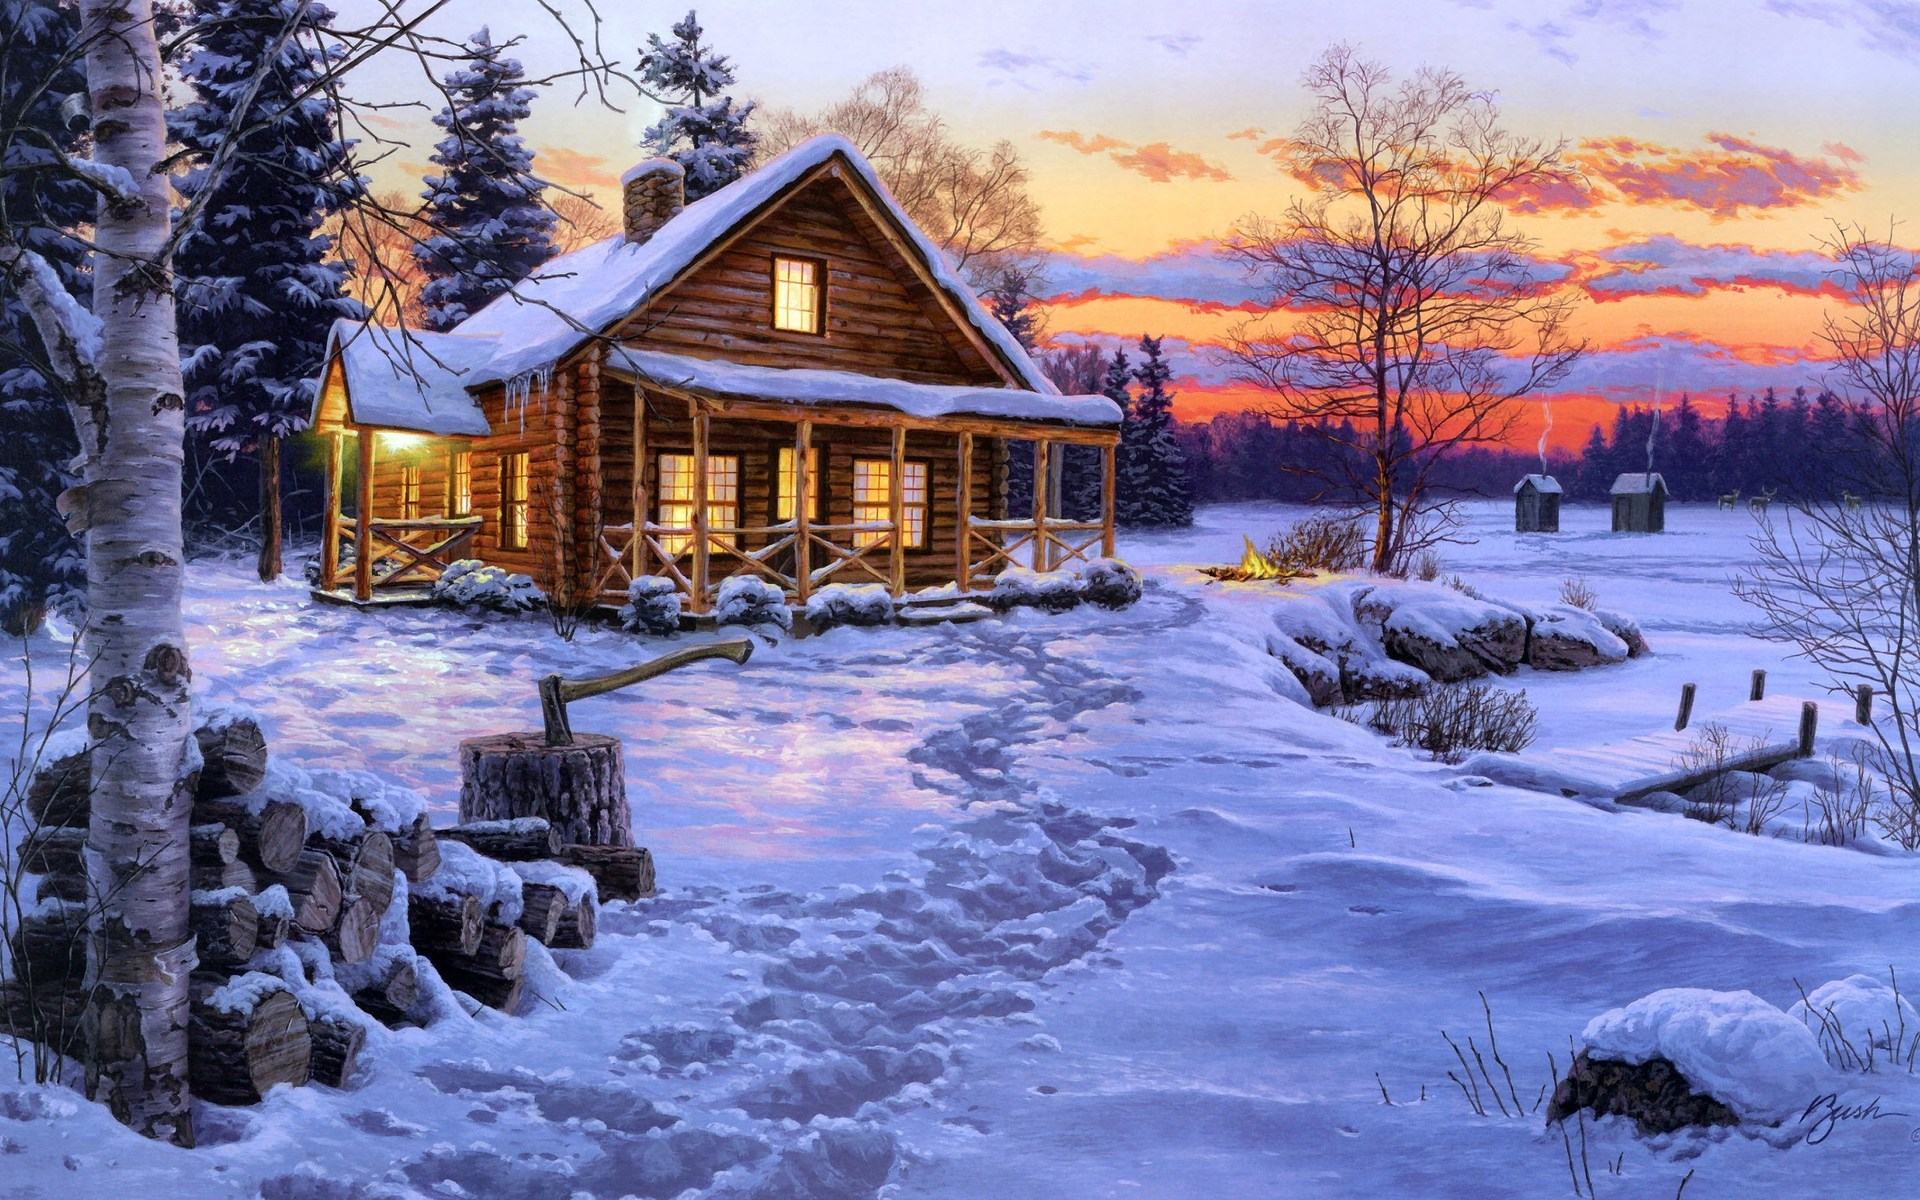 Winter Wallpaper Paintings For Computer